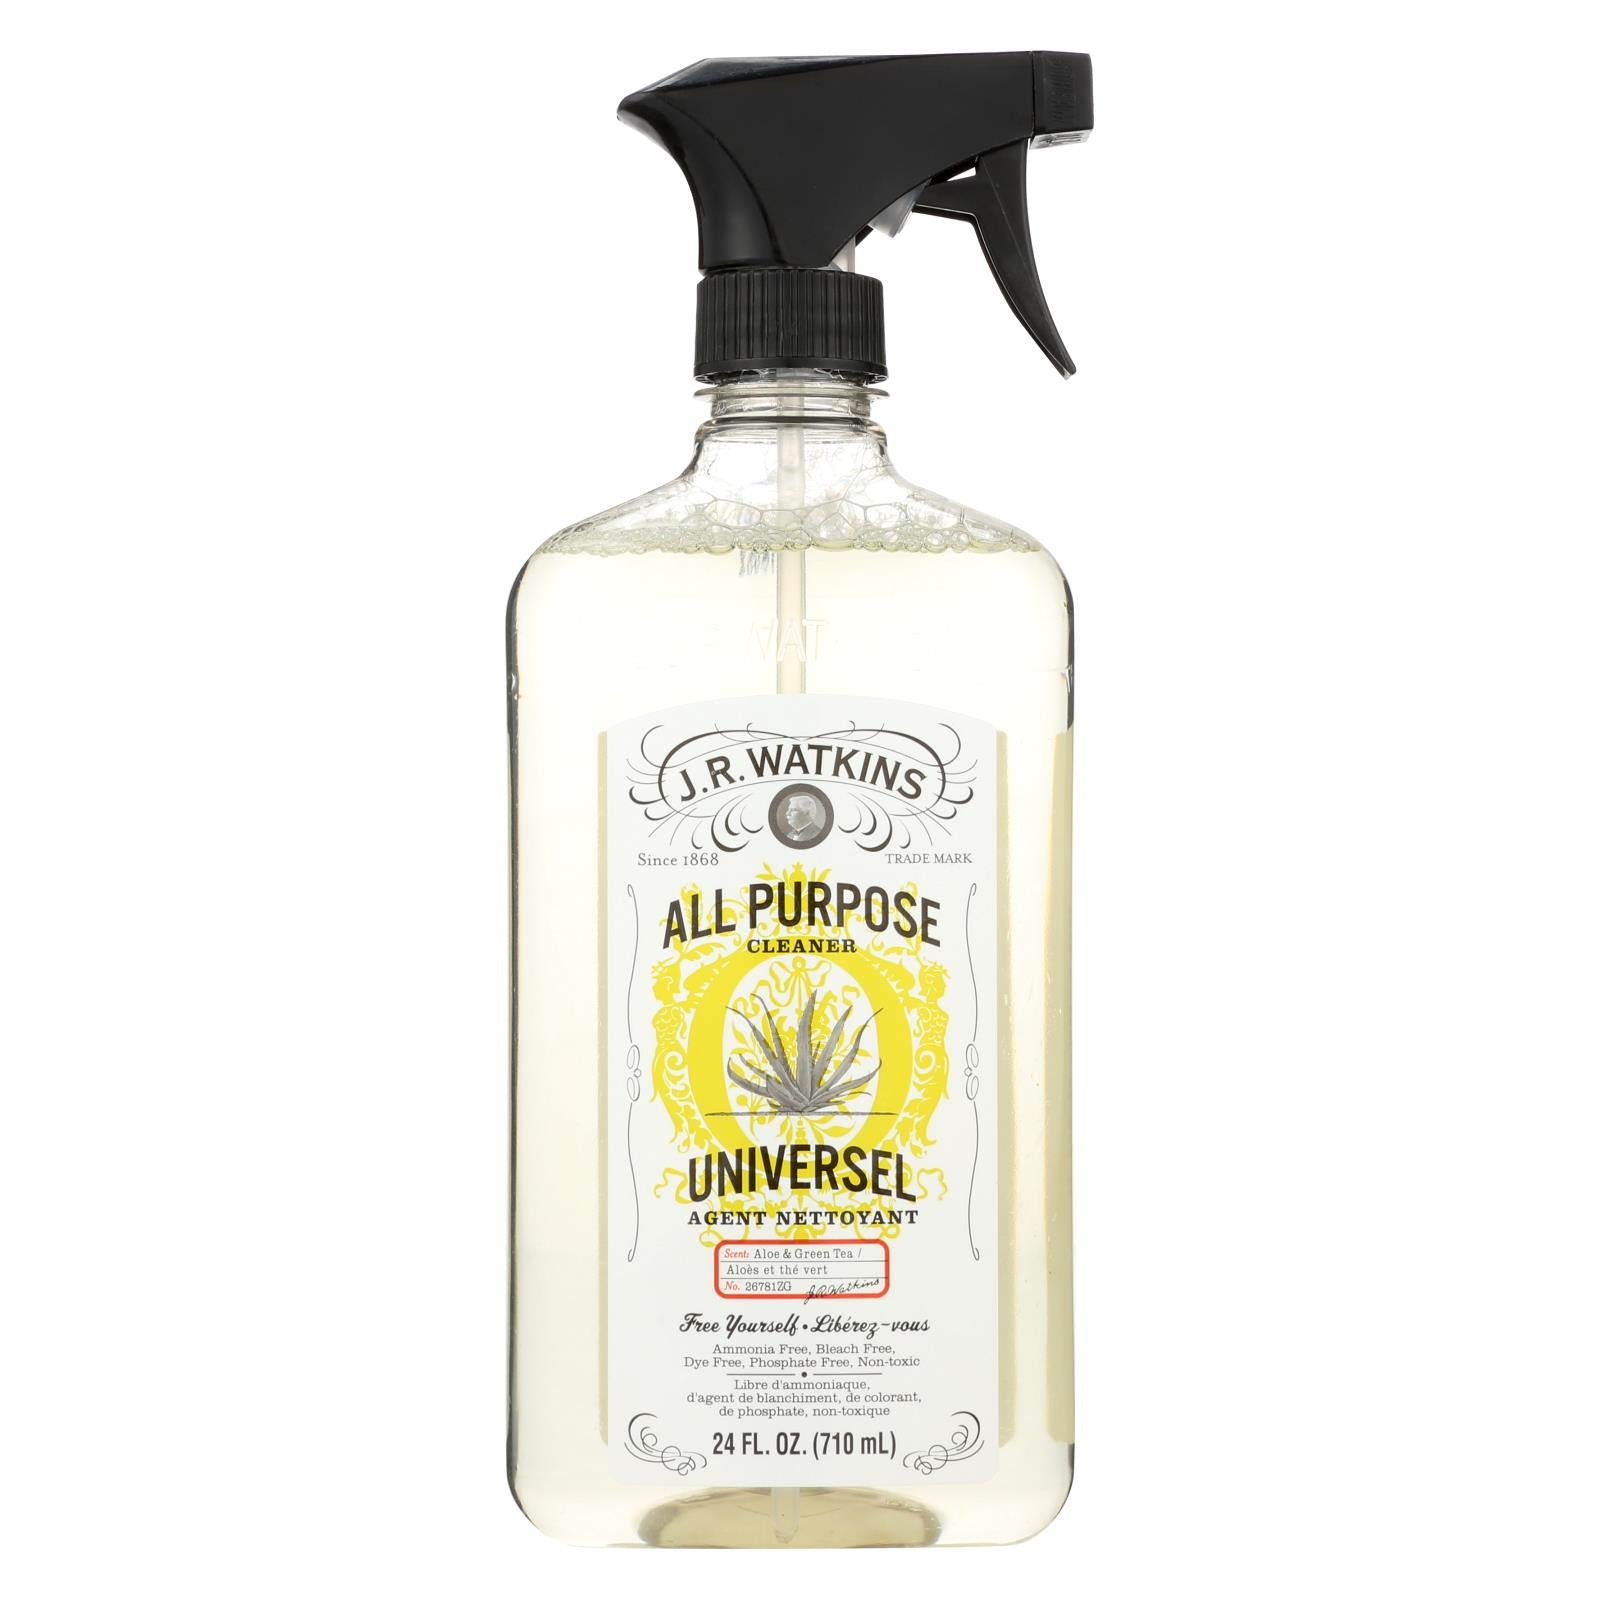 Buy J.R. Watkins Natural All Purpose Cleaner Aloe And Green Tea - 24 fl oz - Household Cleaners from Veroeco.com